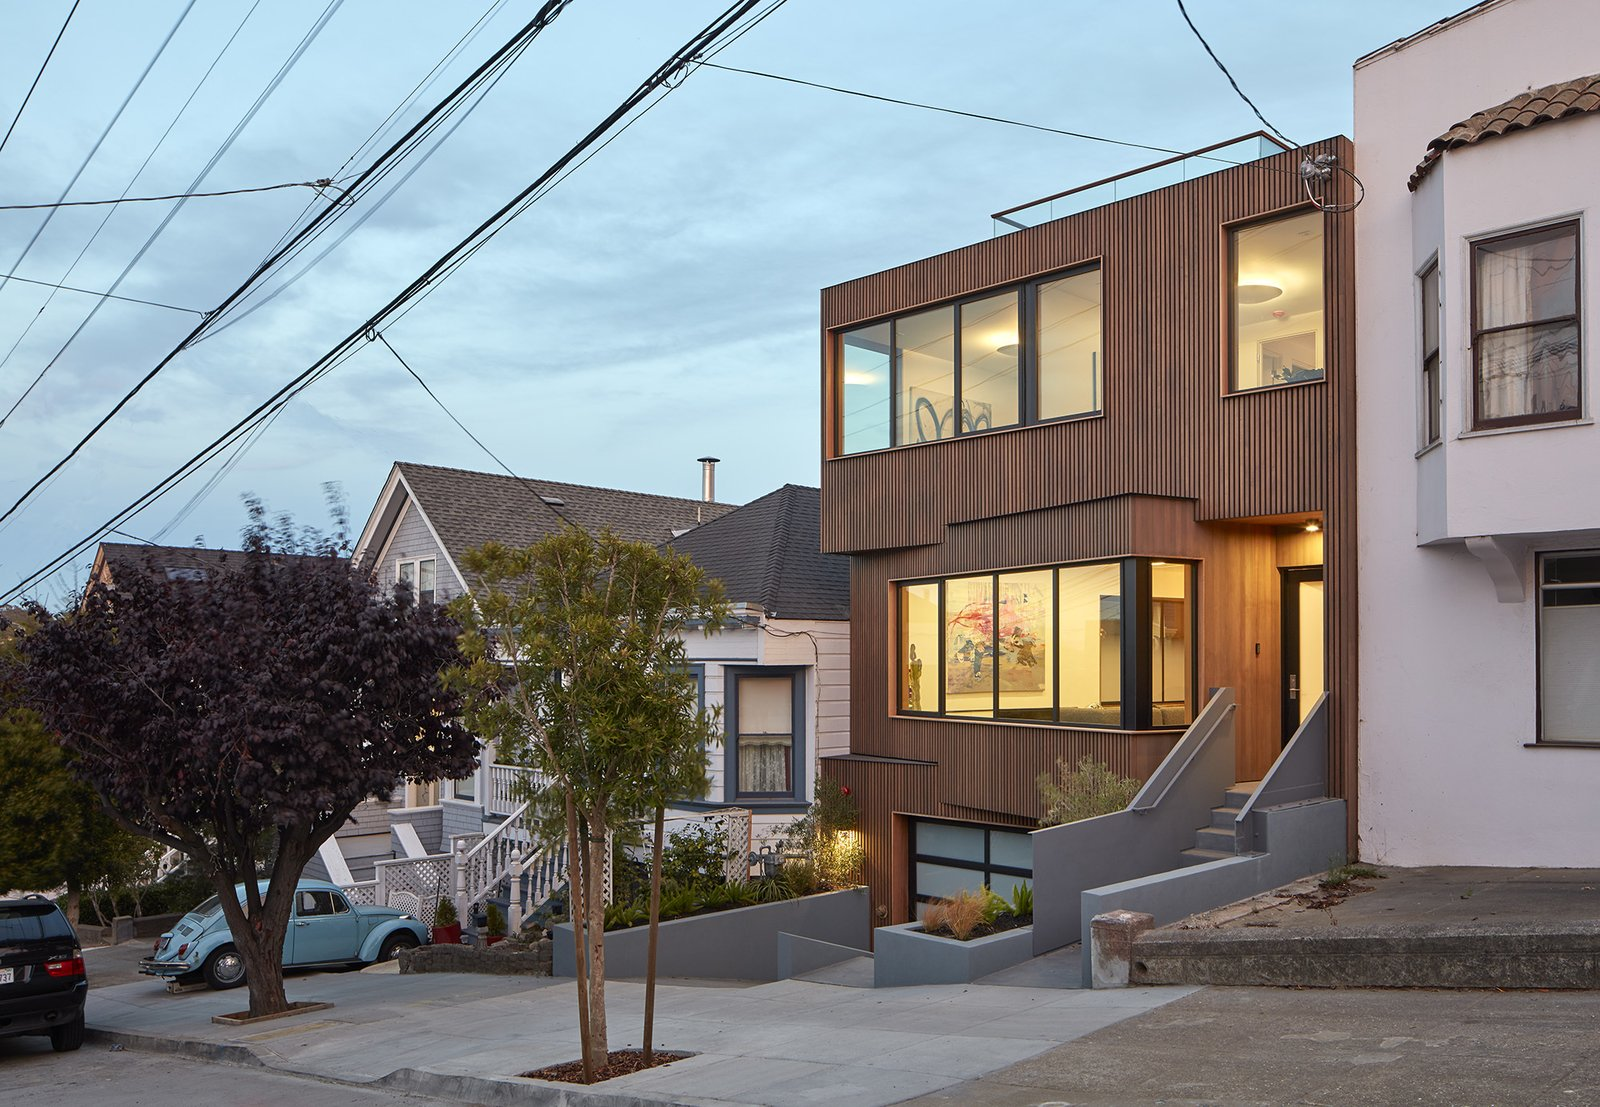 Exterior, Flat RoofLine, Wood Siding Material, and House Building Type View of house amongst neighbors along street.  Noe Valley House by IwamotoScott Architecture